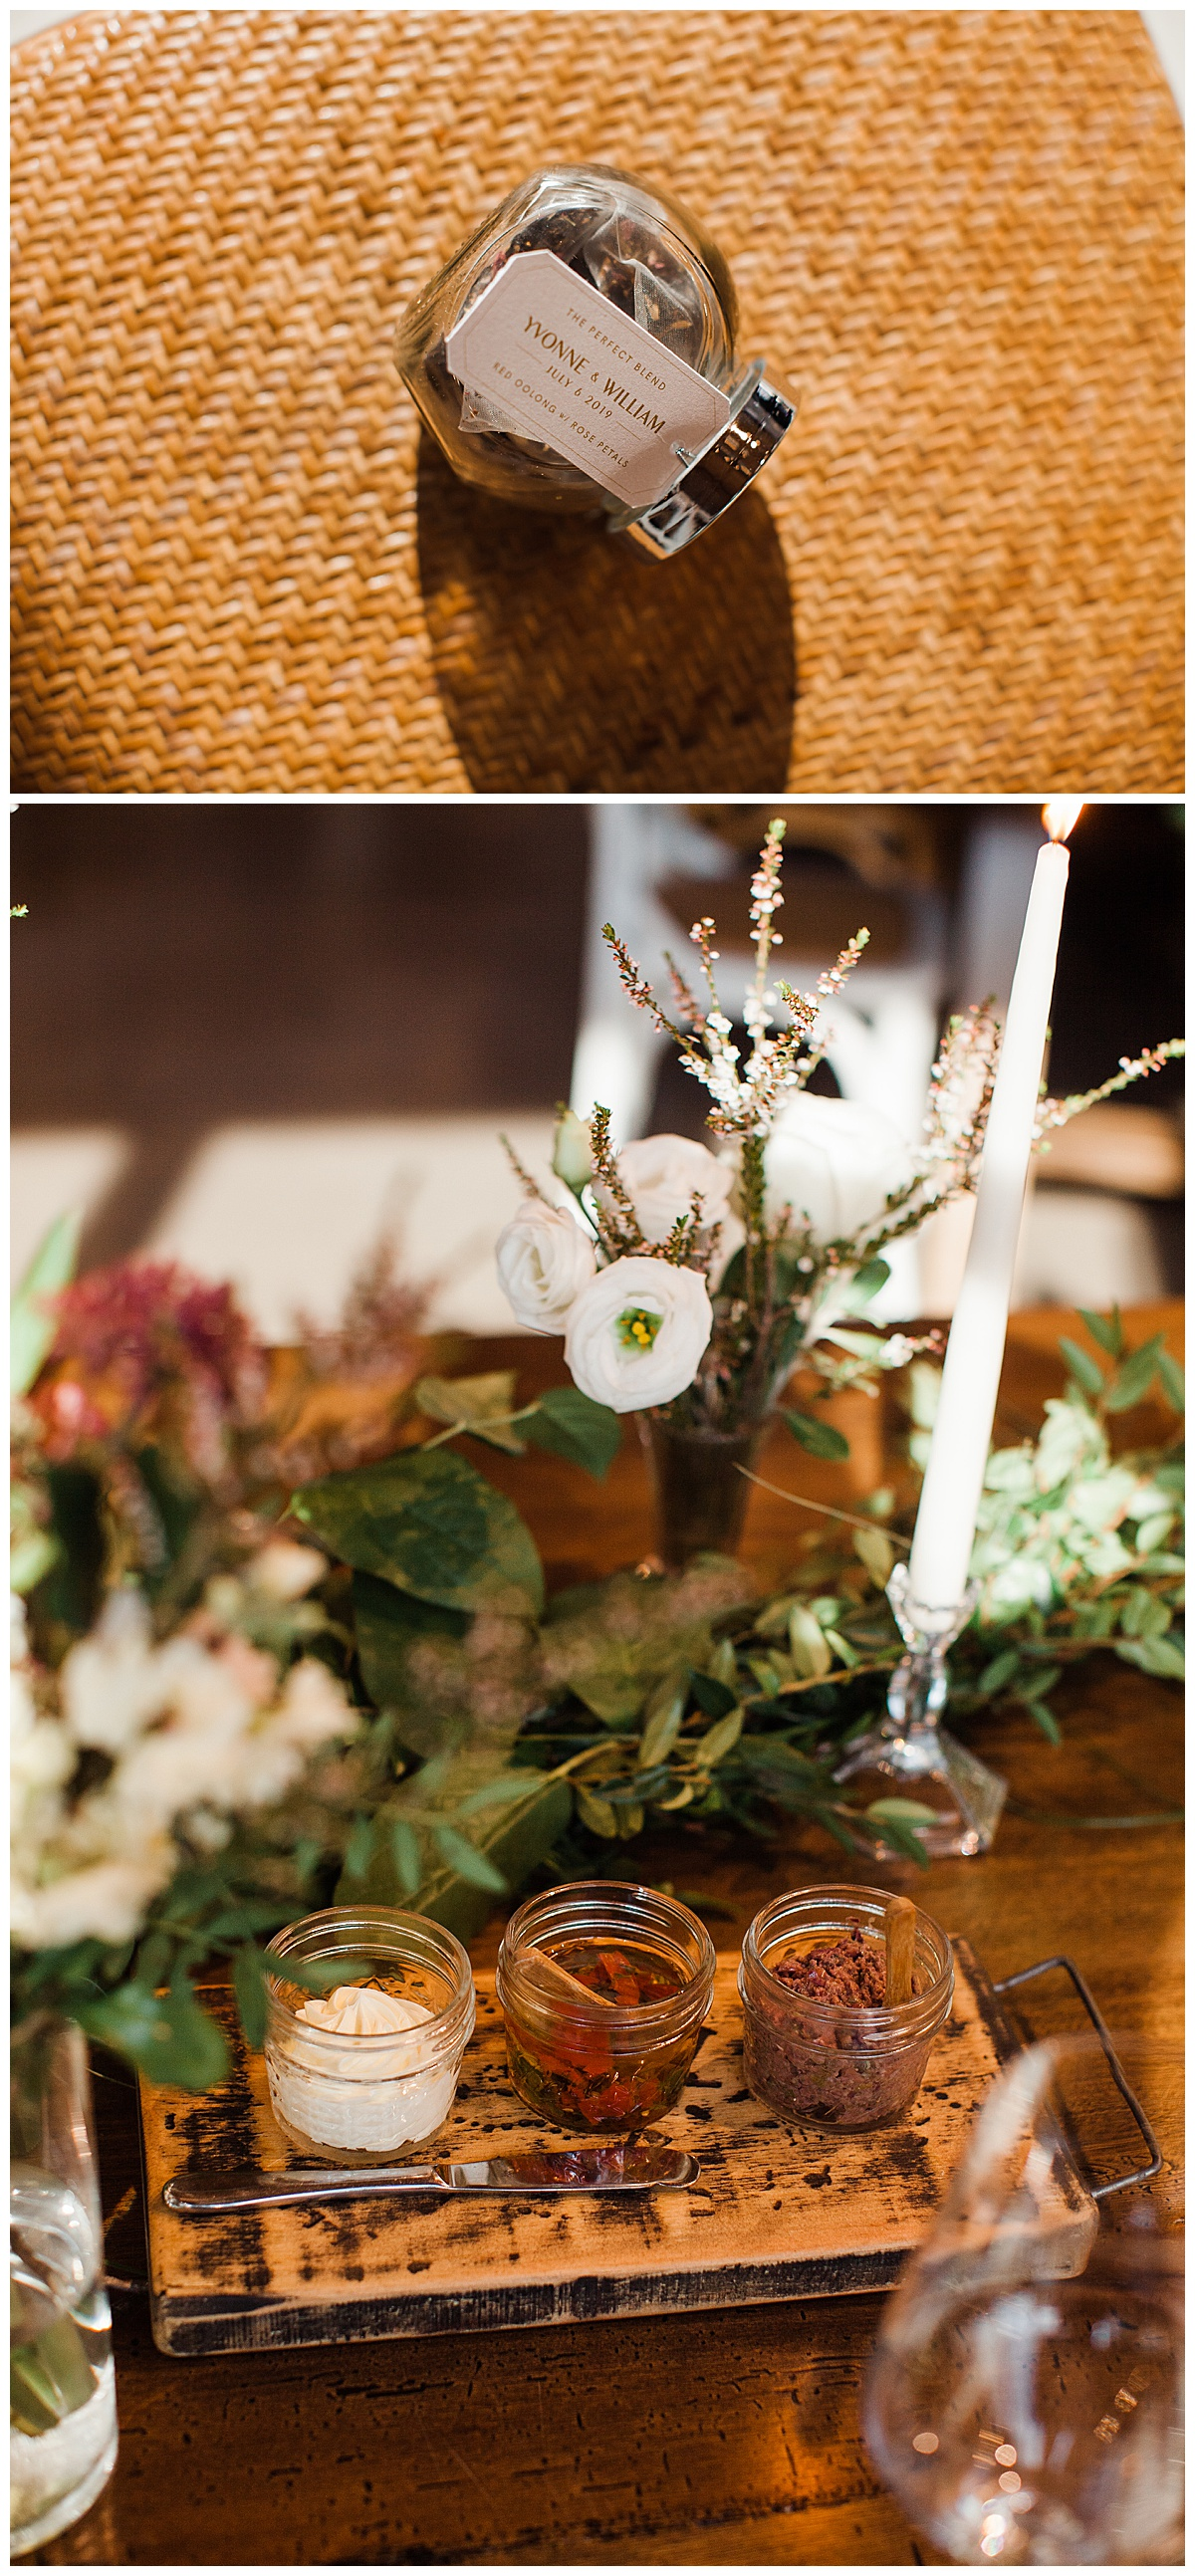 Wedding reception jam and spices| Winery wedding reception details| Toronto photographer| 3photography